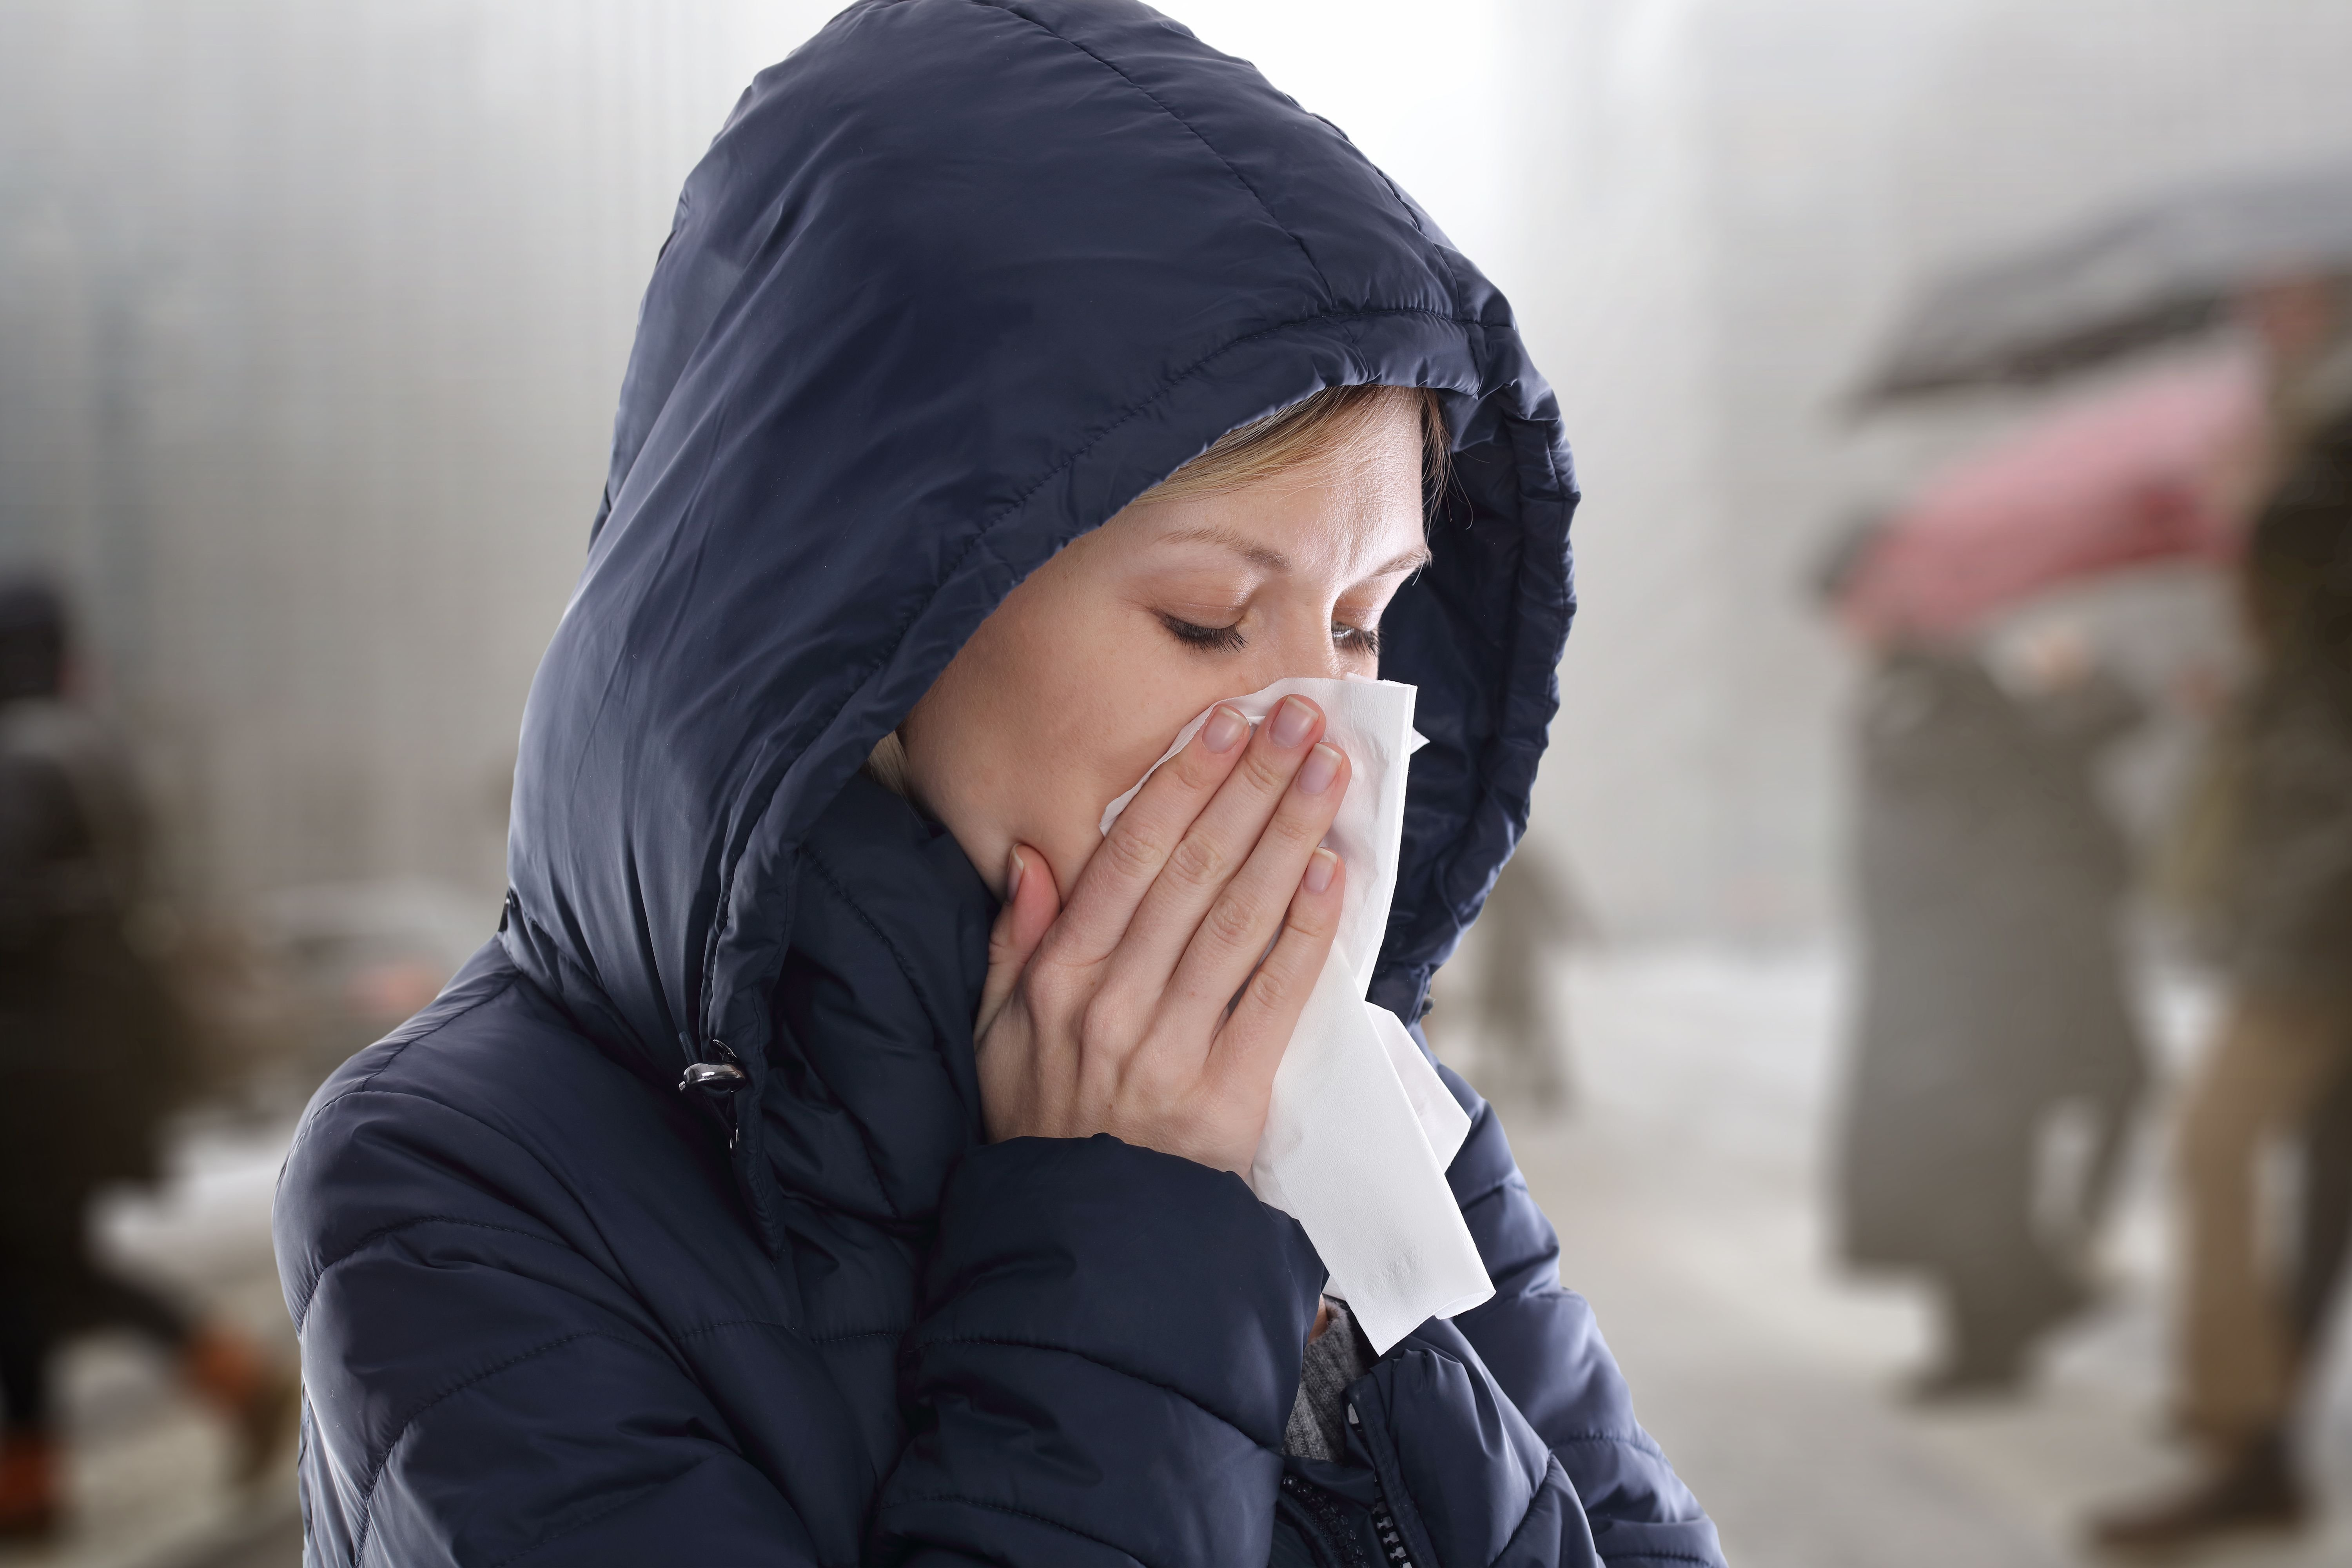 A sick woman blows her nose on tissue. | Source: Shutterstock